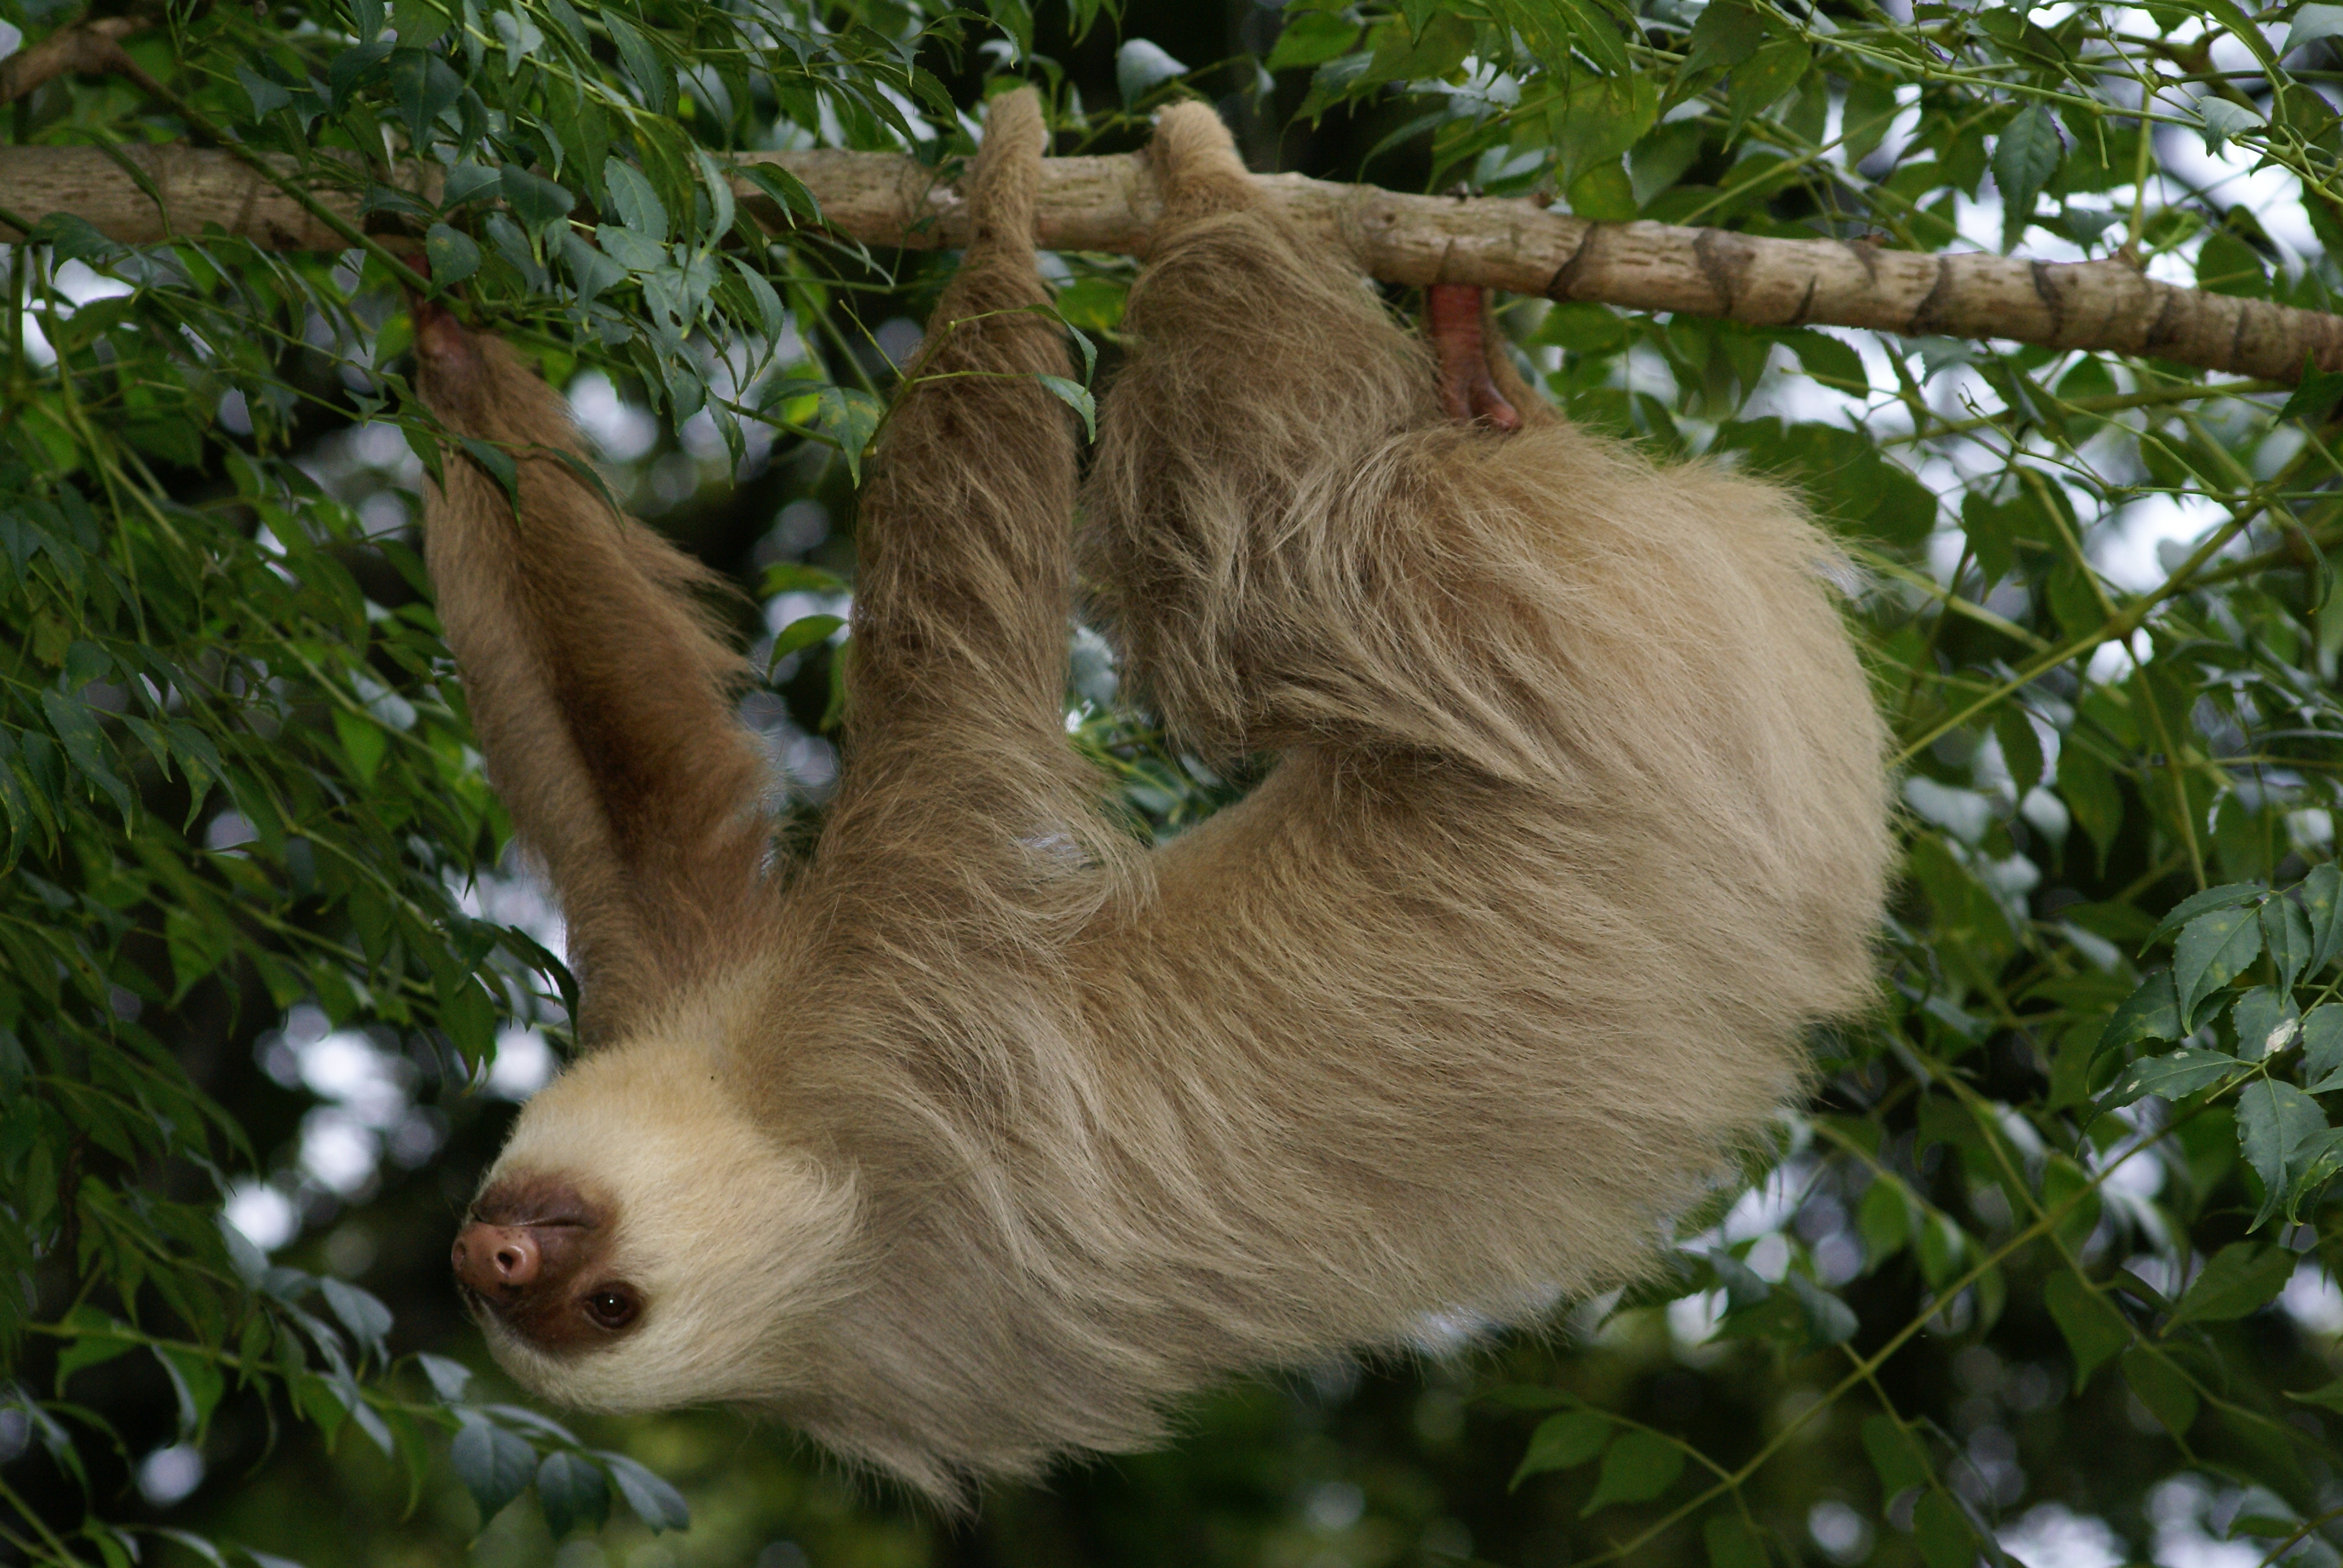 Sloth going to the bathroom - Two Toed Sloth Sp